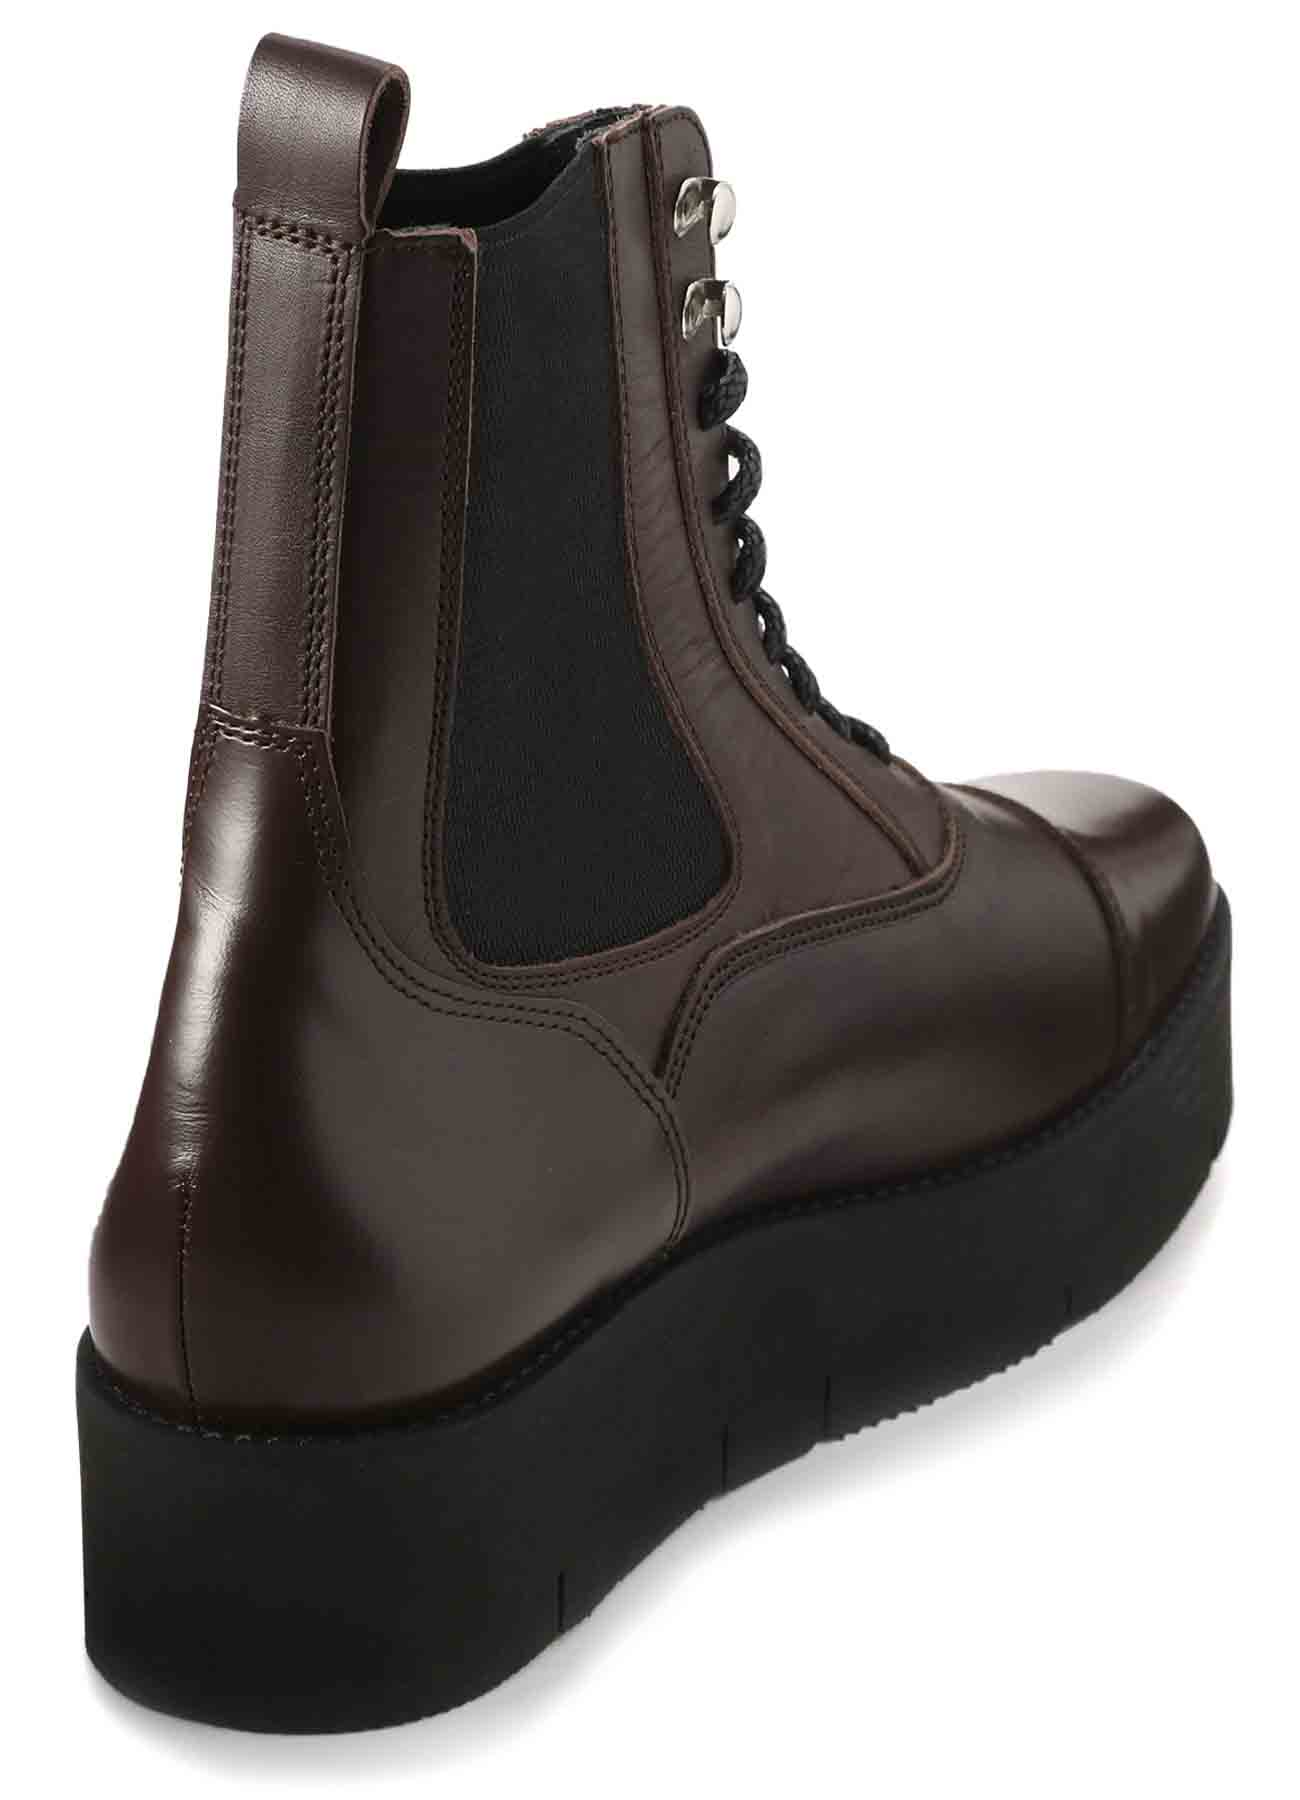 SMOOTH LEATHER THICK SOLE SIDE GORE BOOTS